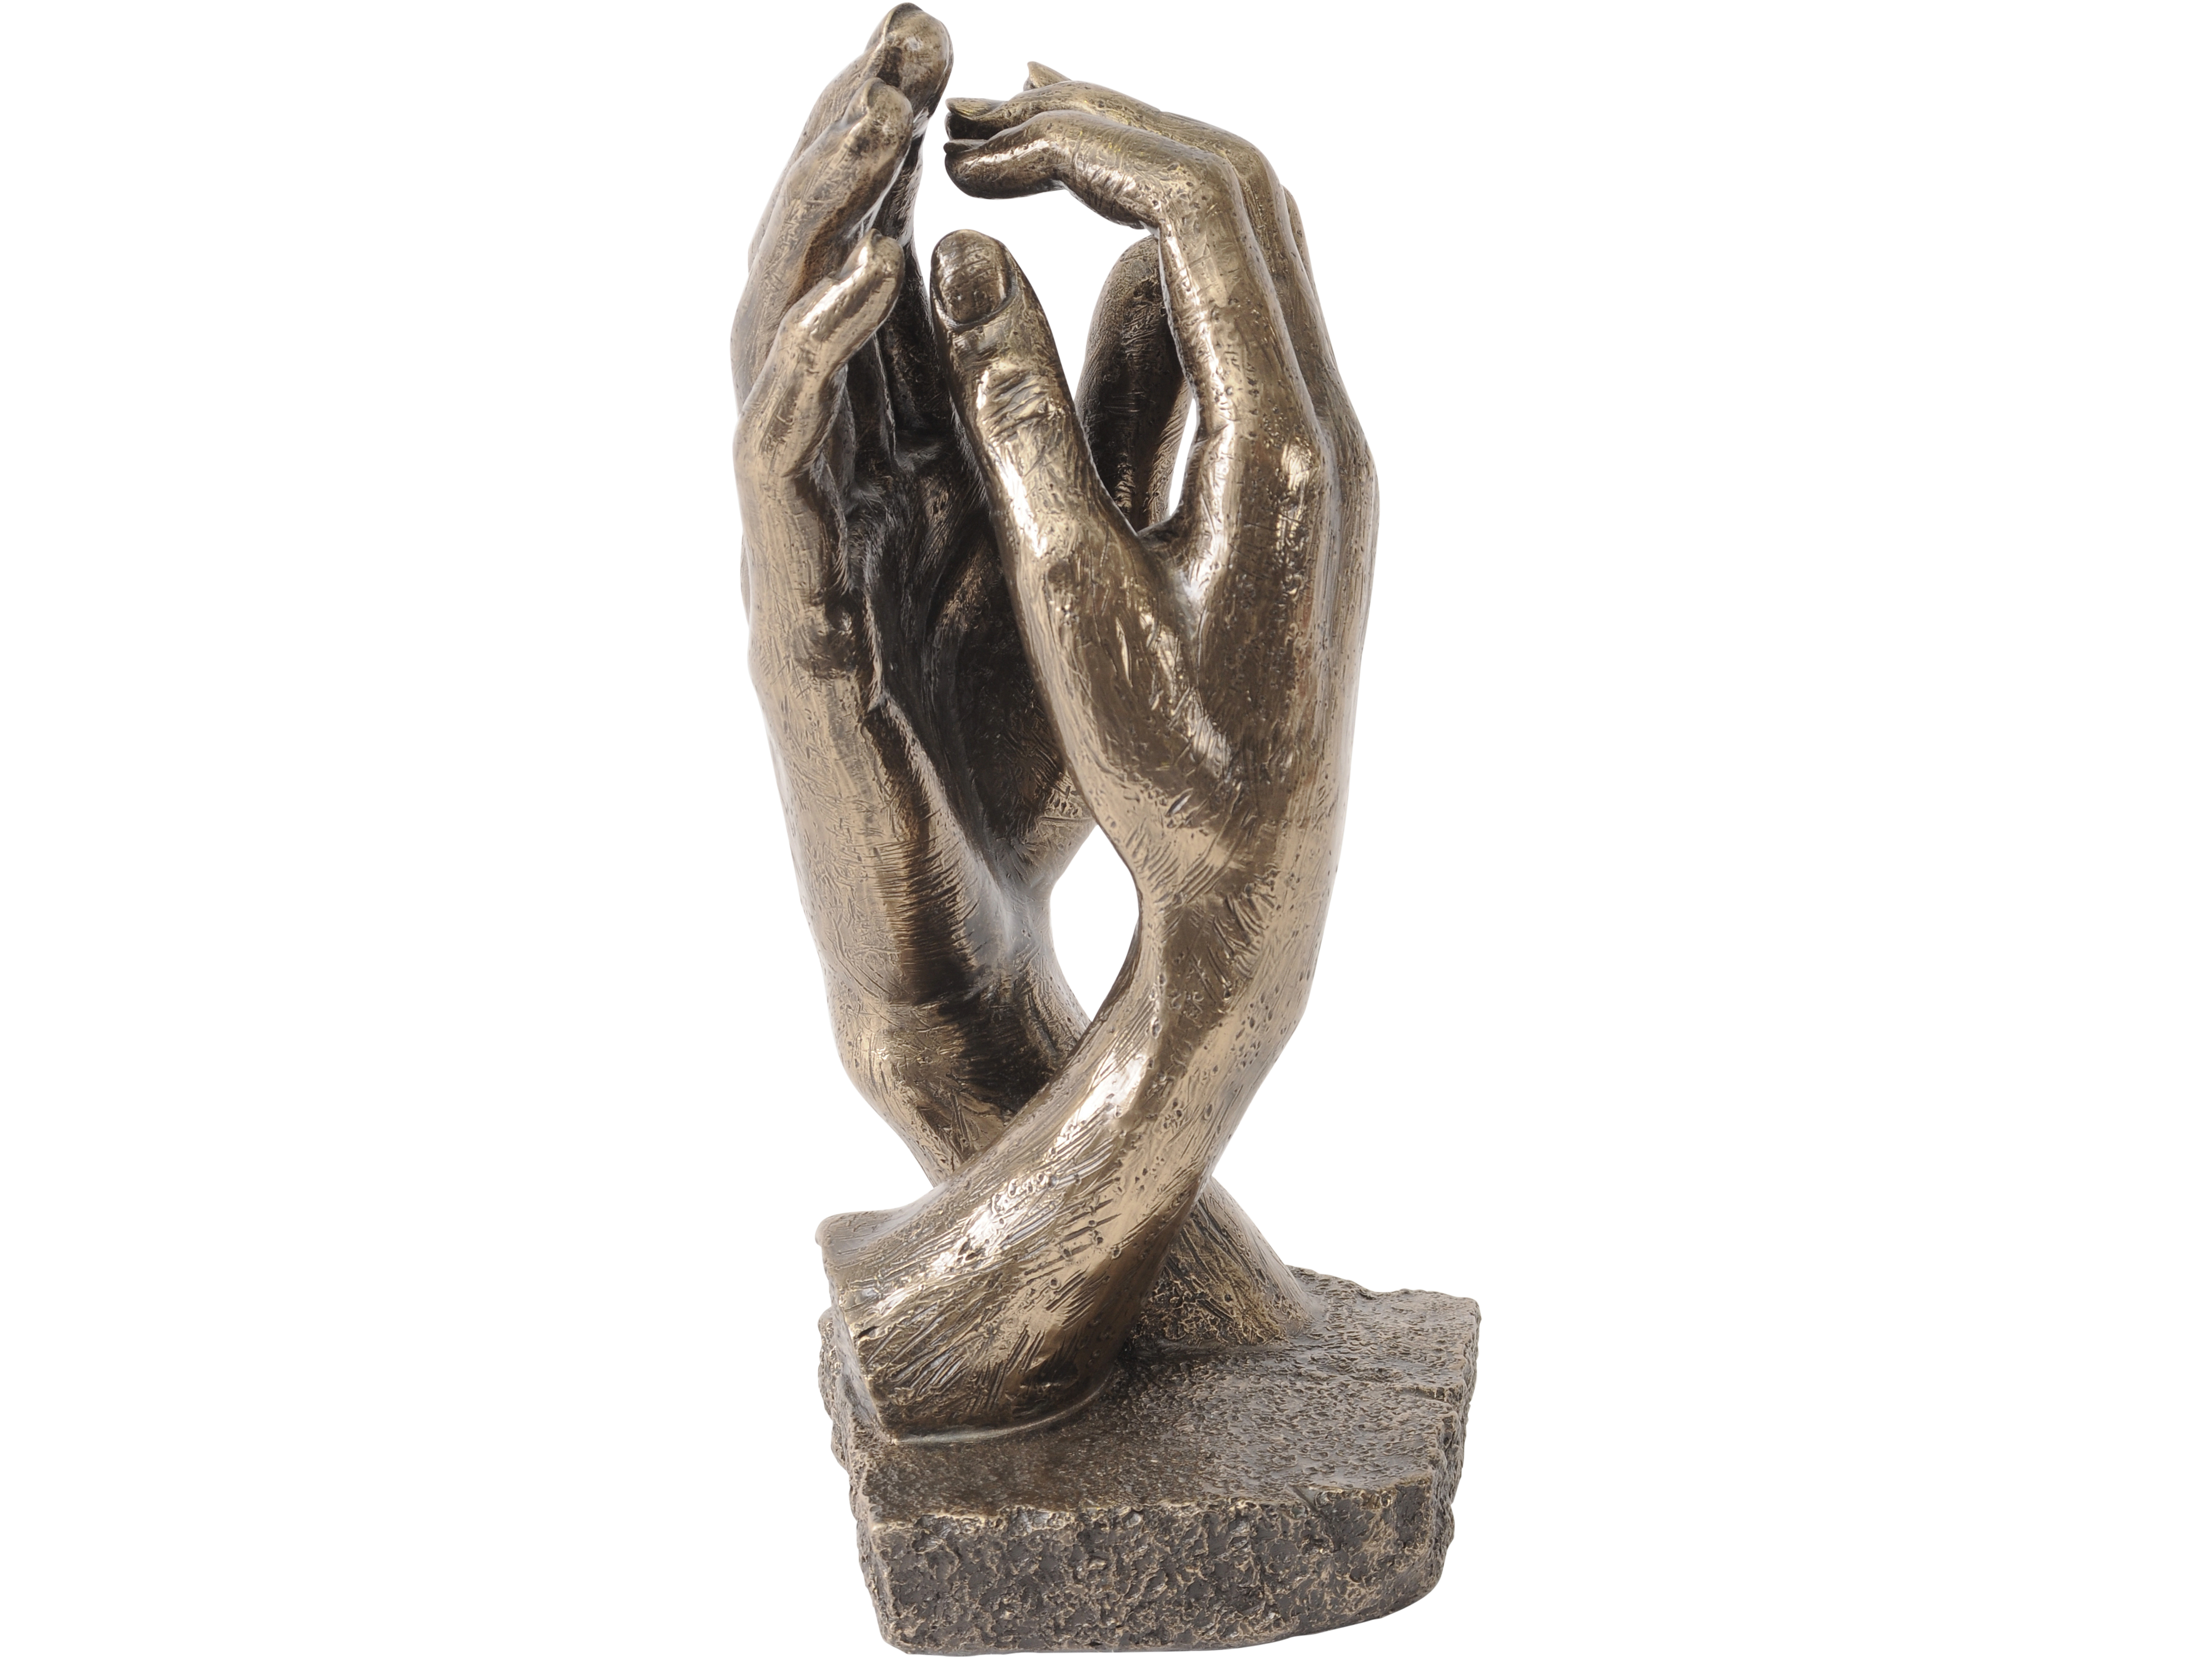 Clasping Hands Sculpture